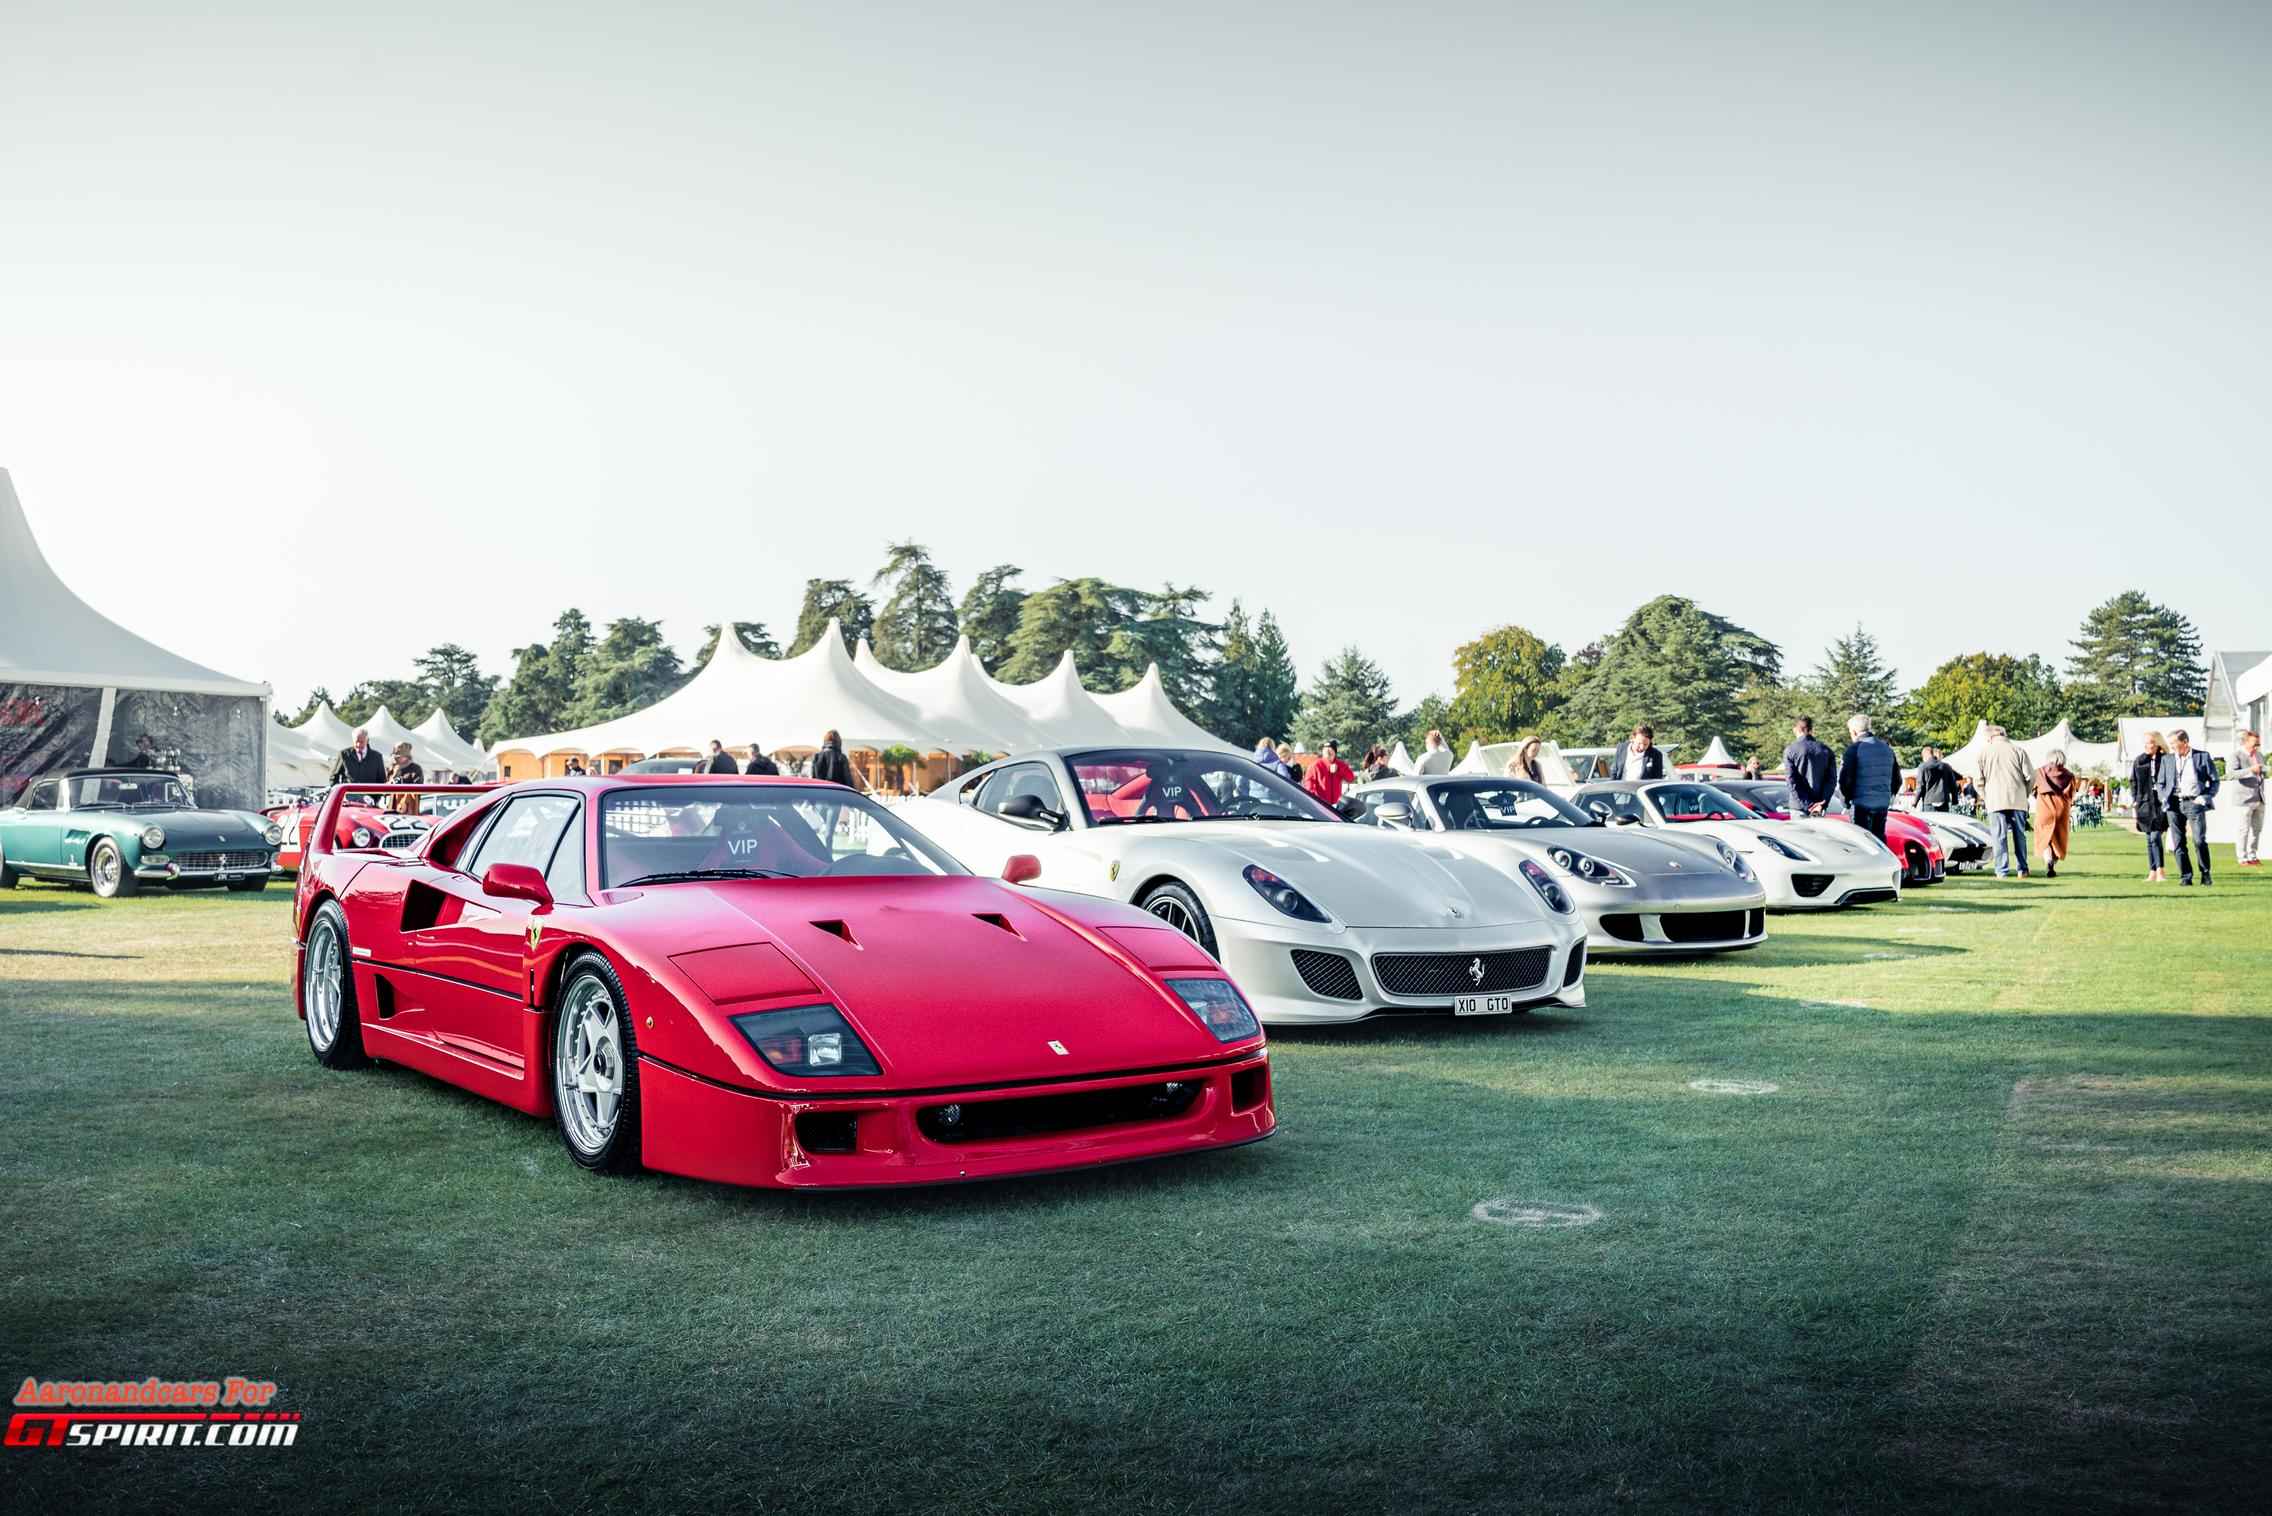 Salon Prive 2020 Ferrari F40